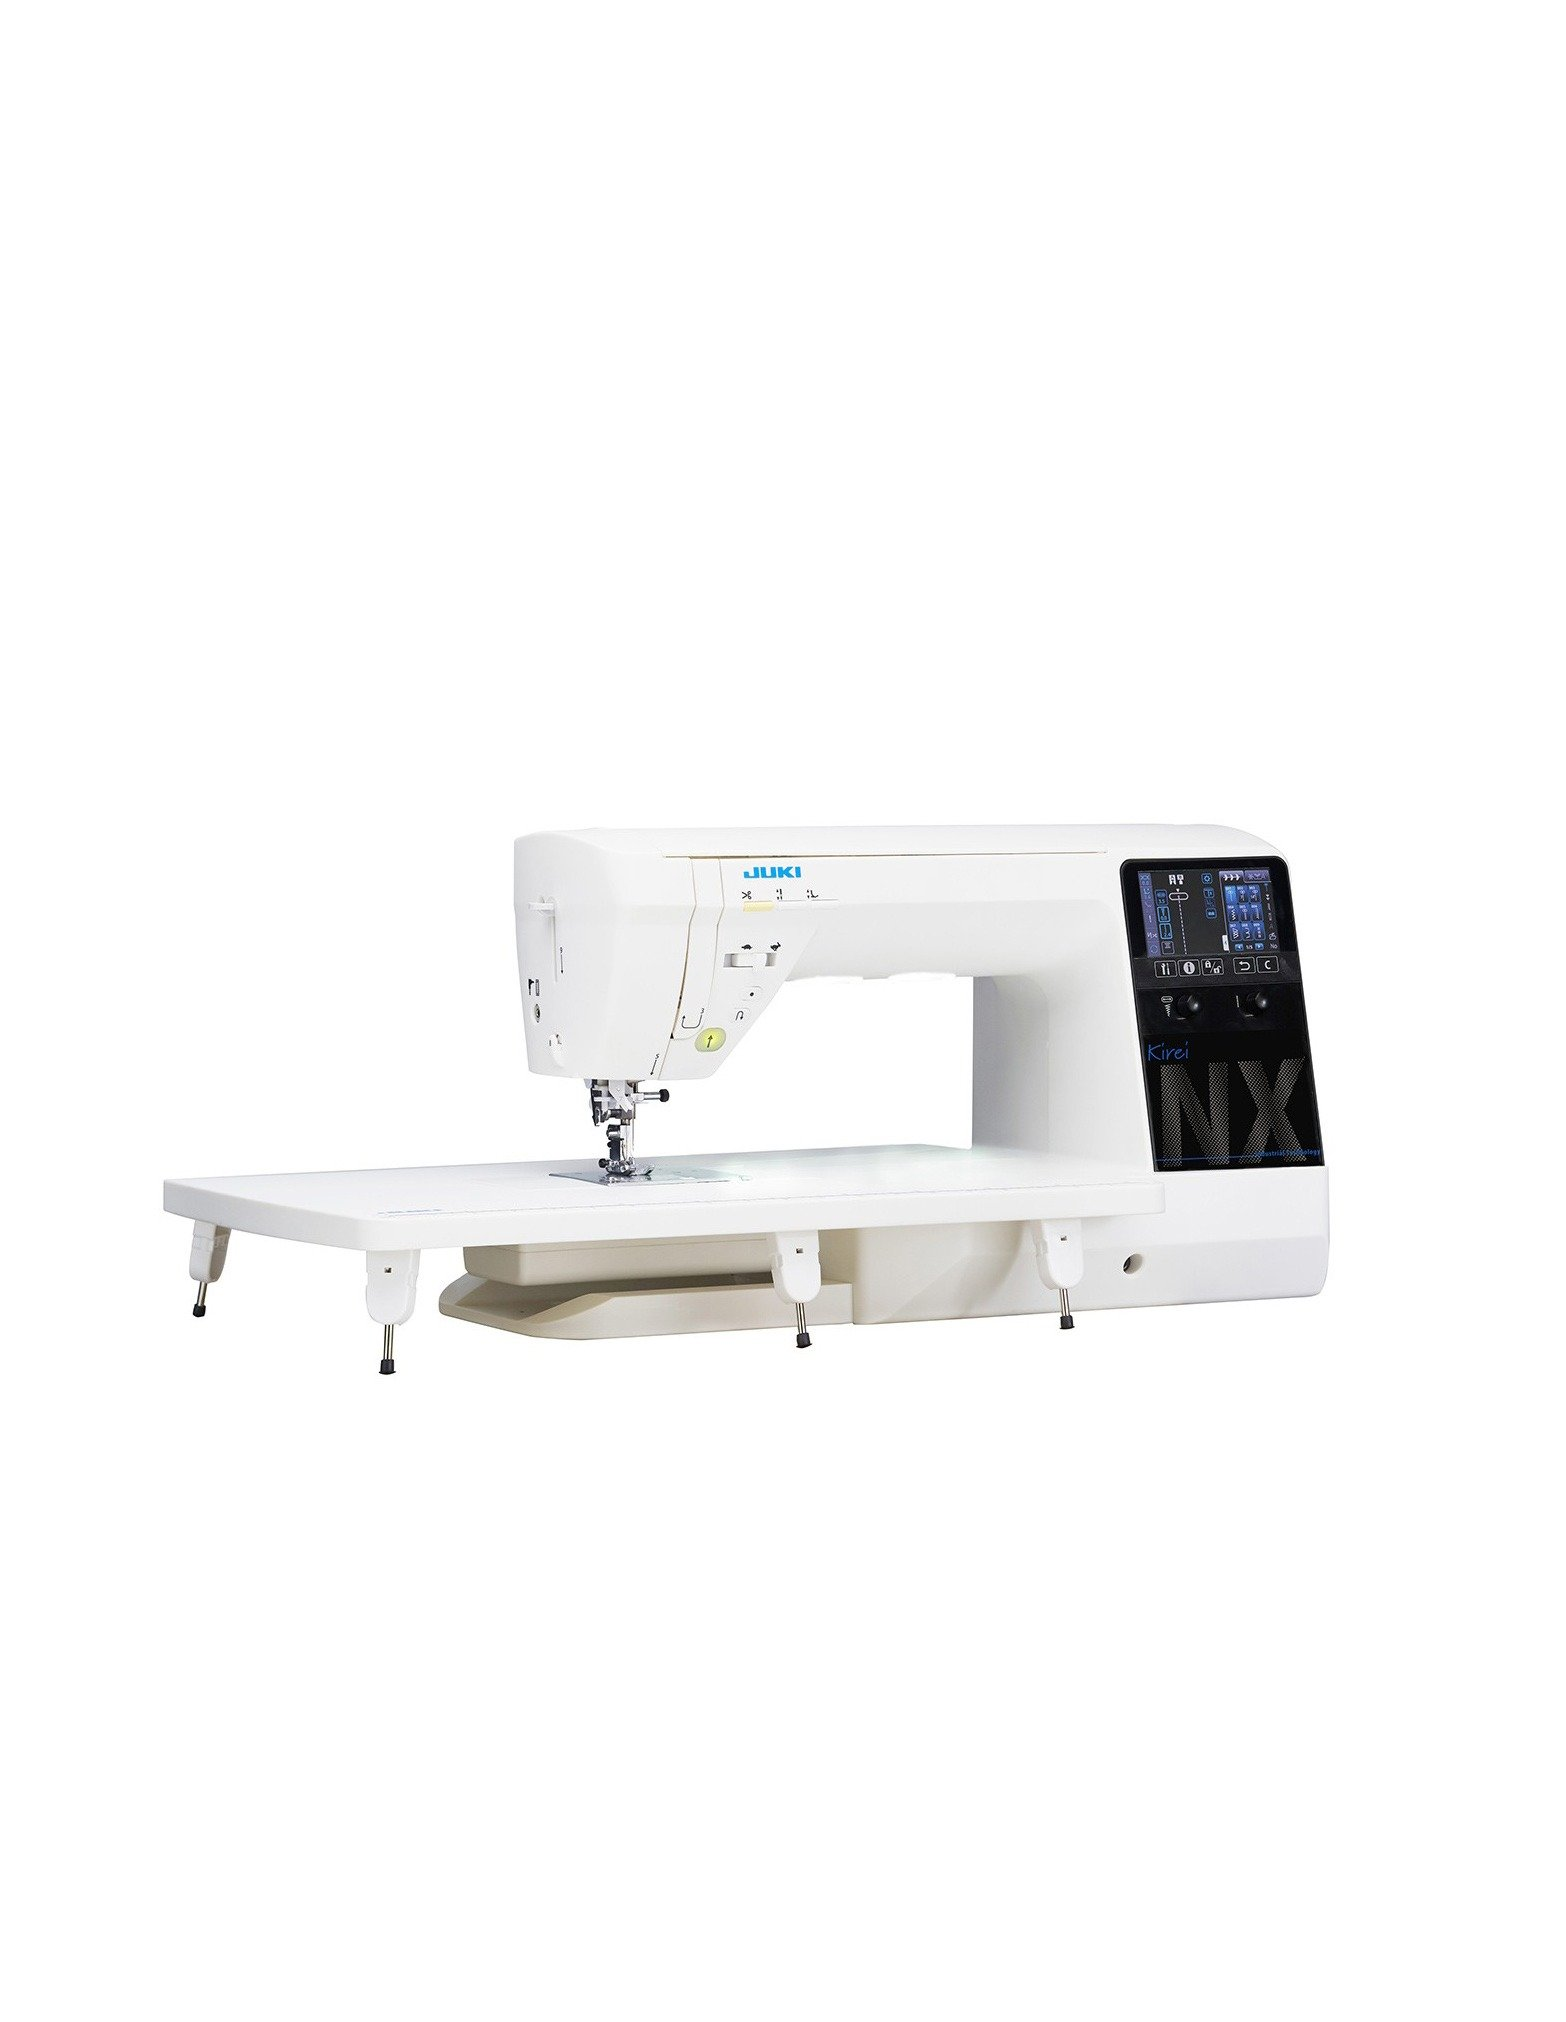 Juki NX7 HZL Kirei NX7 Long Arm Quilting Quilter Throat Smart Feed Dual Feed System Australia Perth Western Australia Table